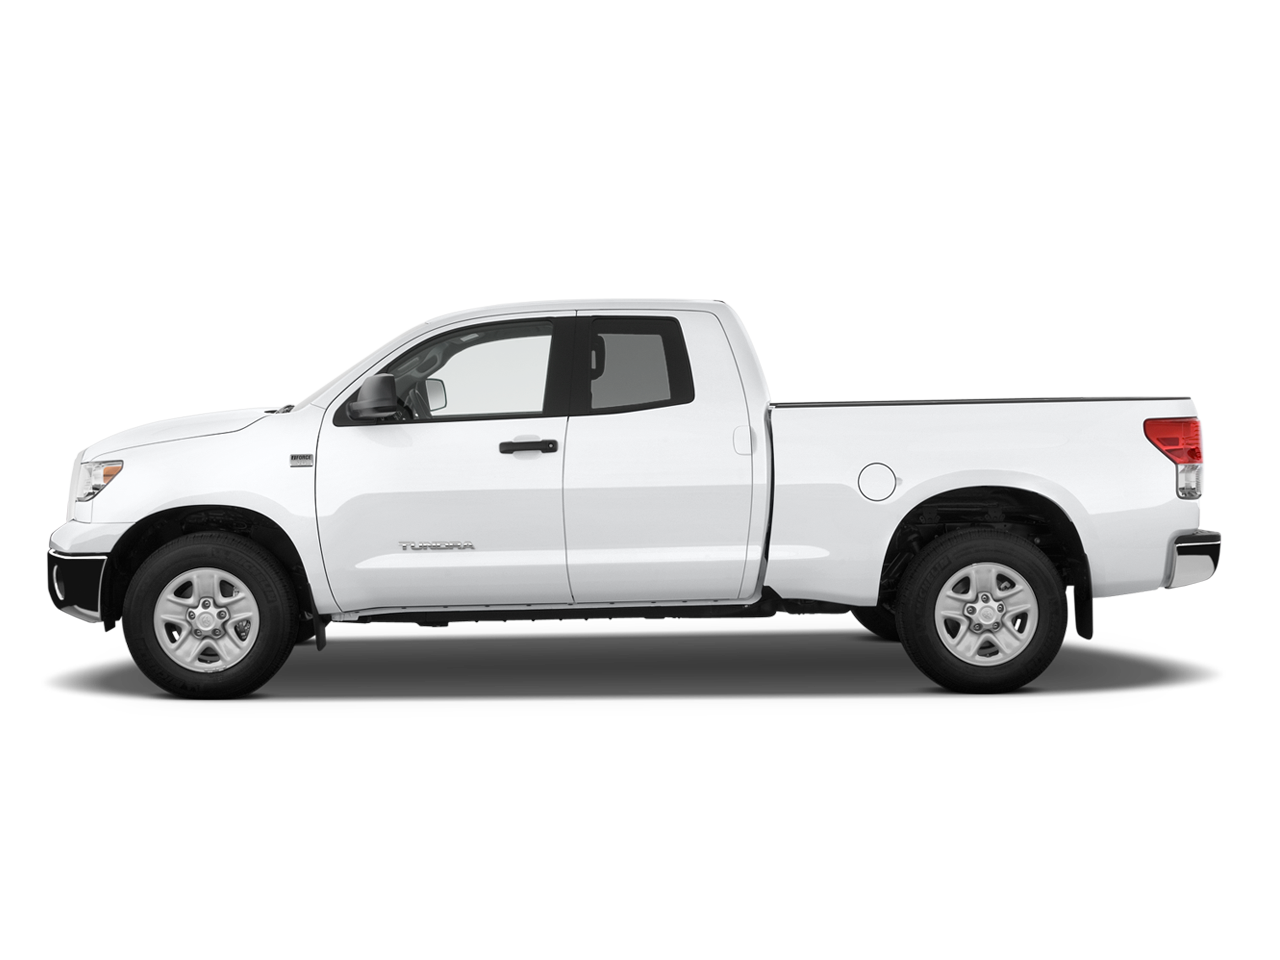 2008 Toyota Tundra DOUBLE CAB for sale in Seguin TX 78155